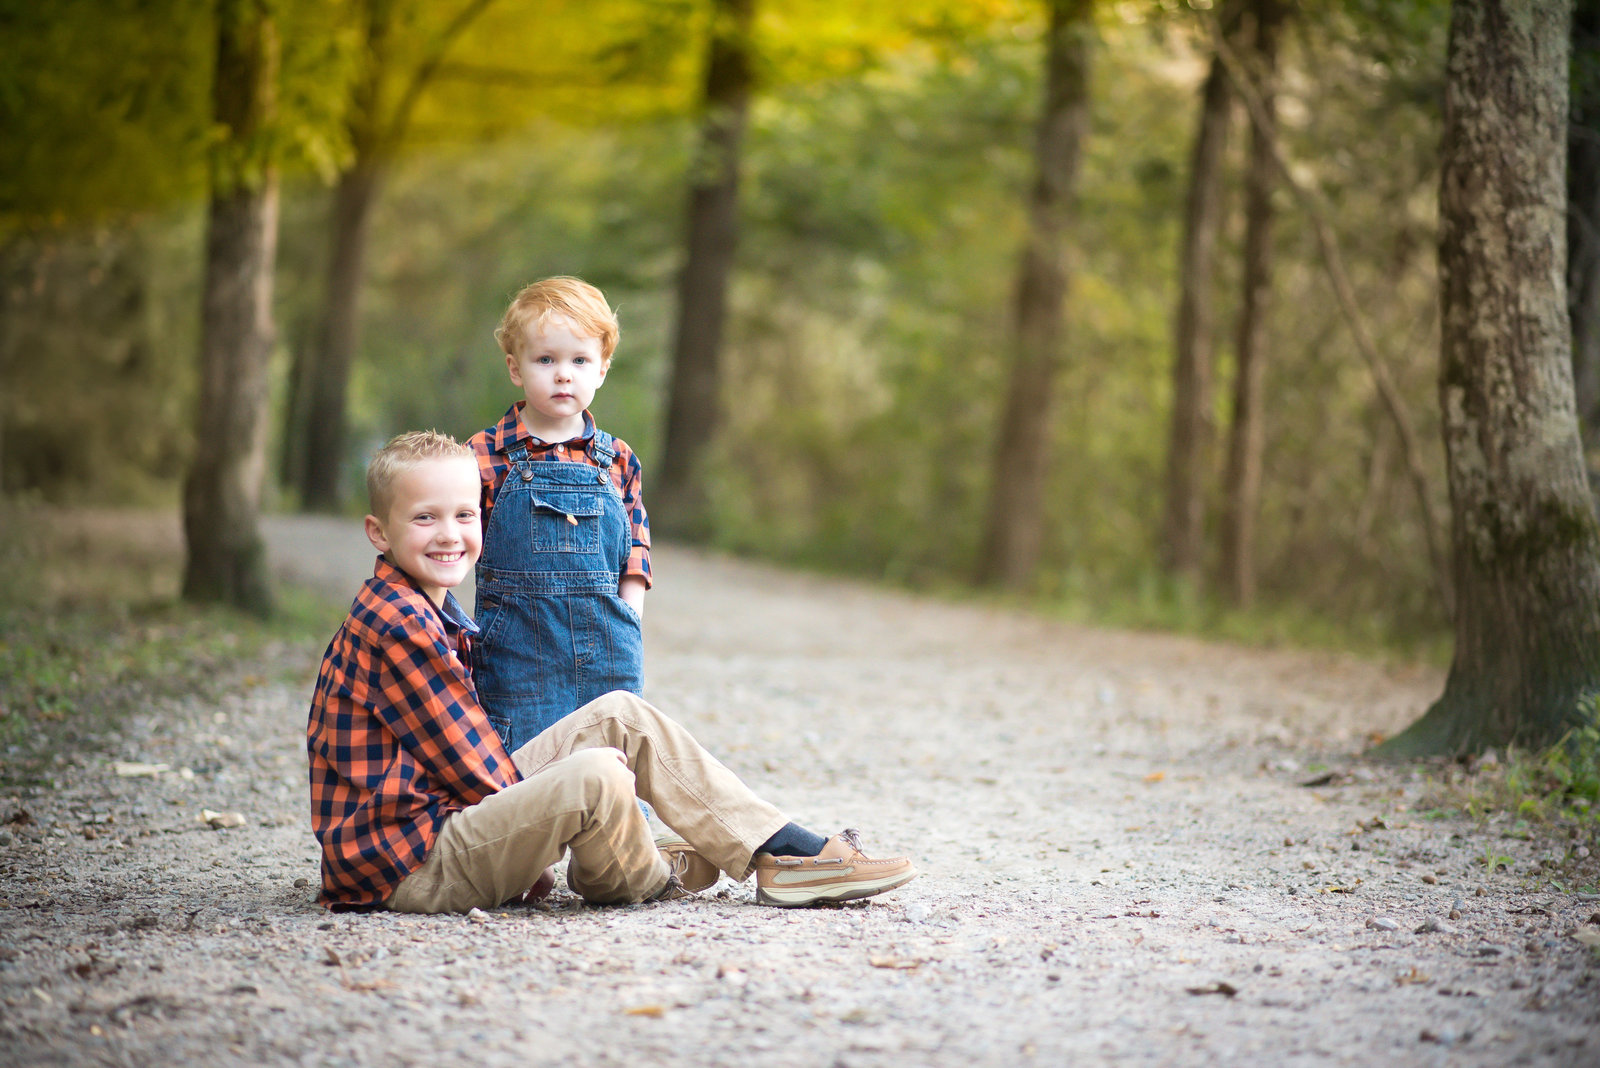 Handsome boys |Family photography in Richmond